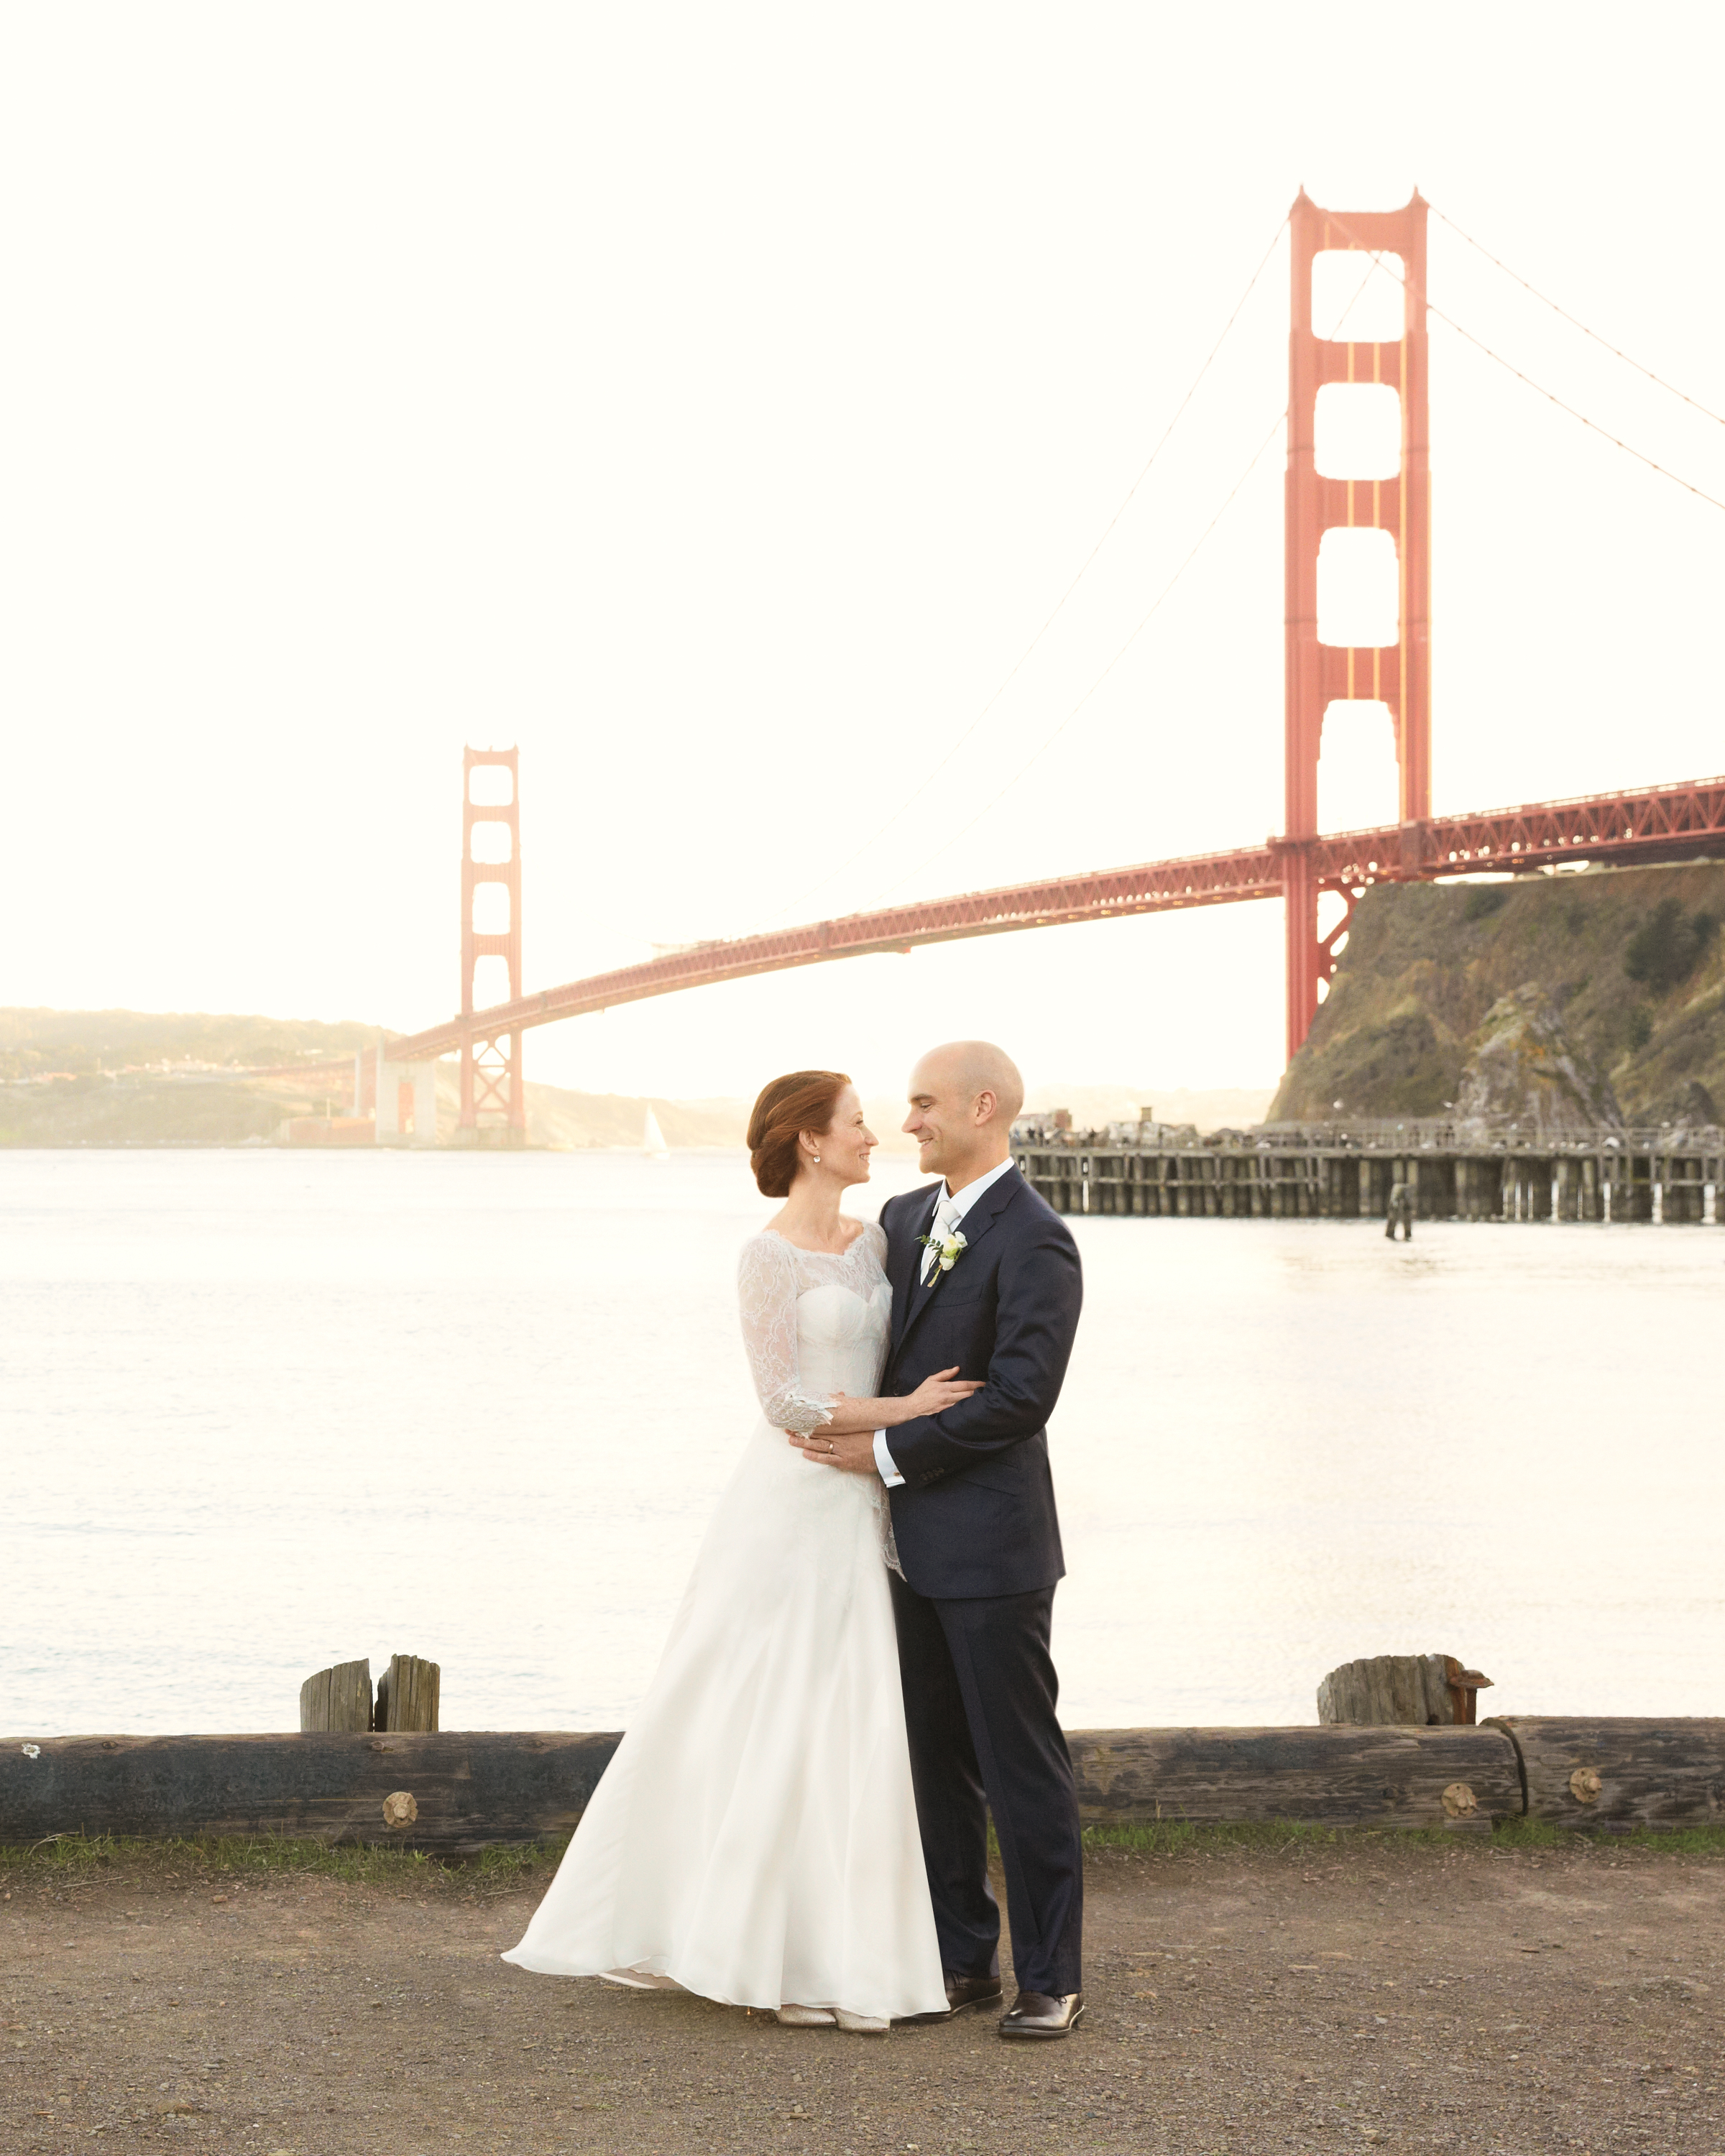 Meaghan and Conrad's West Coast Wedding